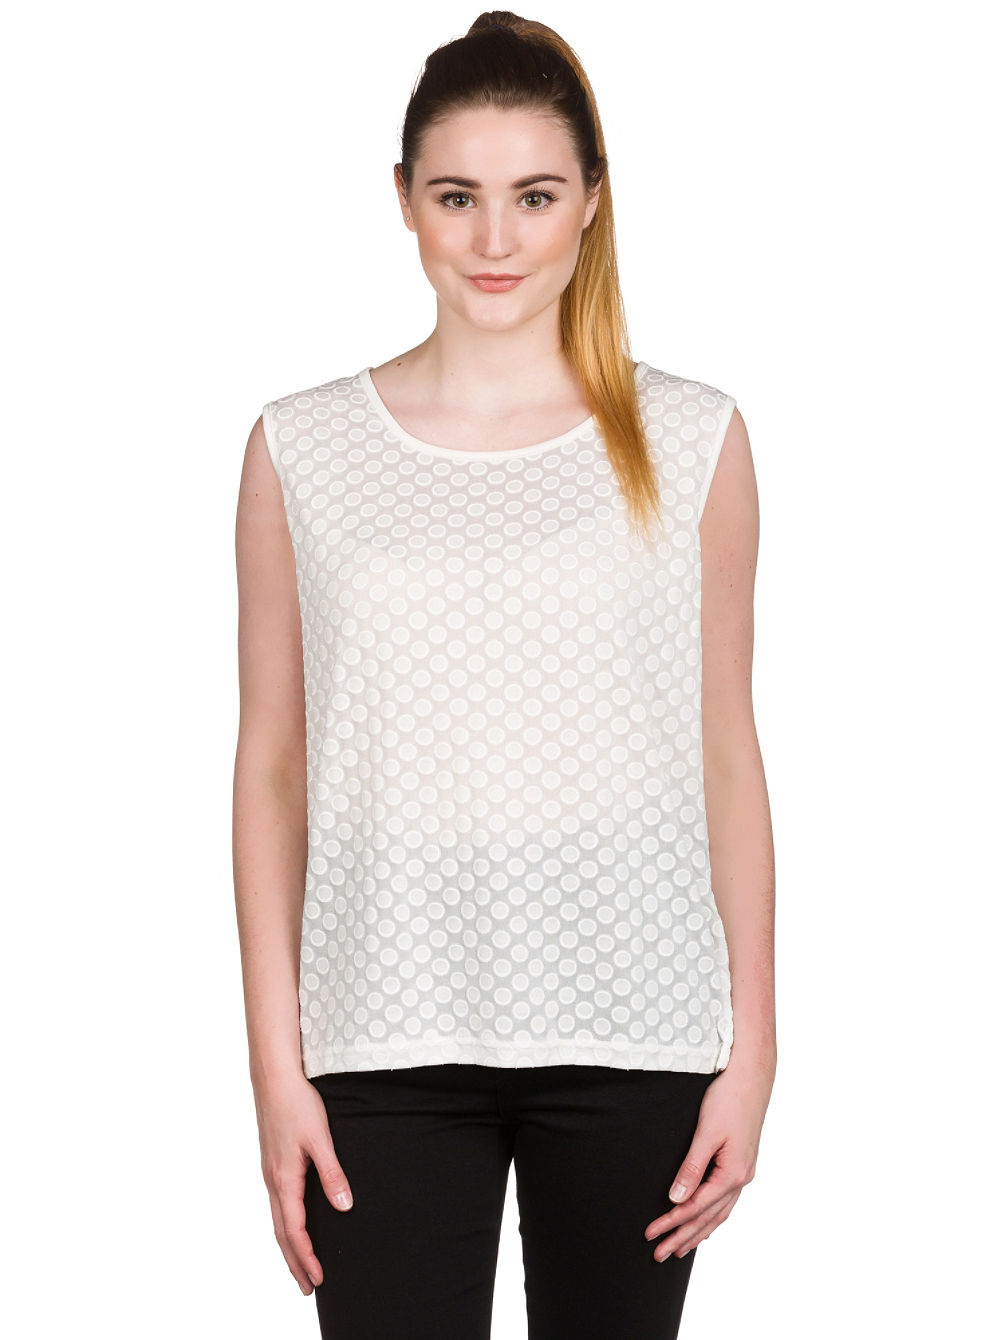 Avaron Blouse Tank Top